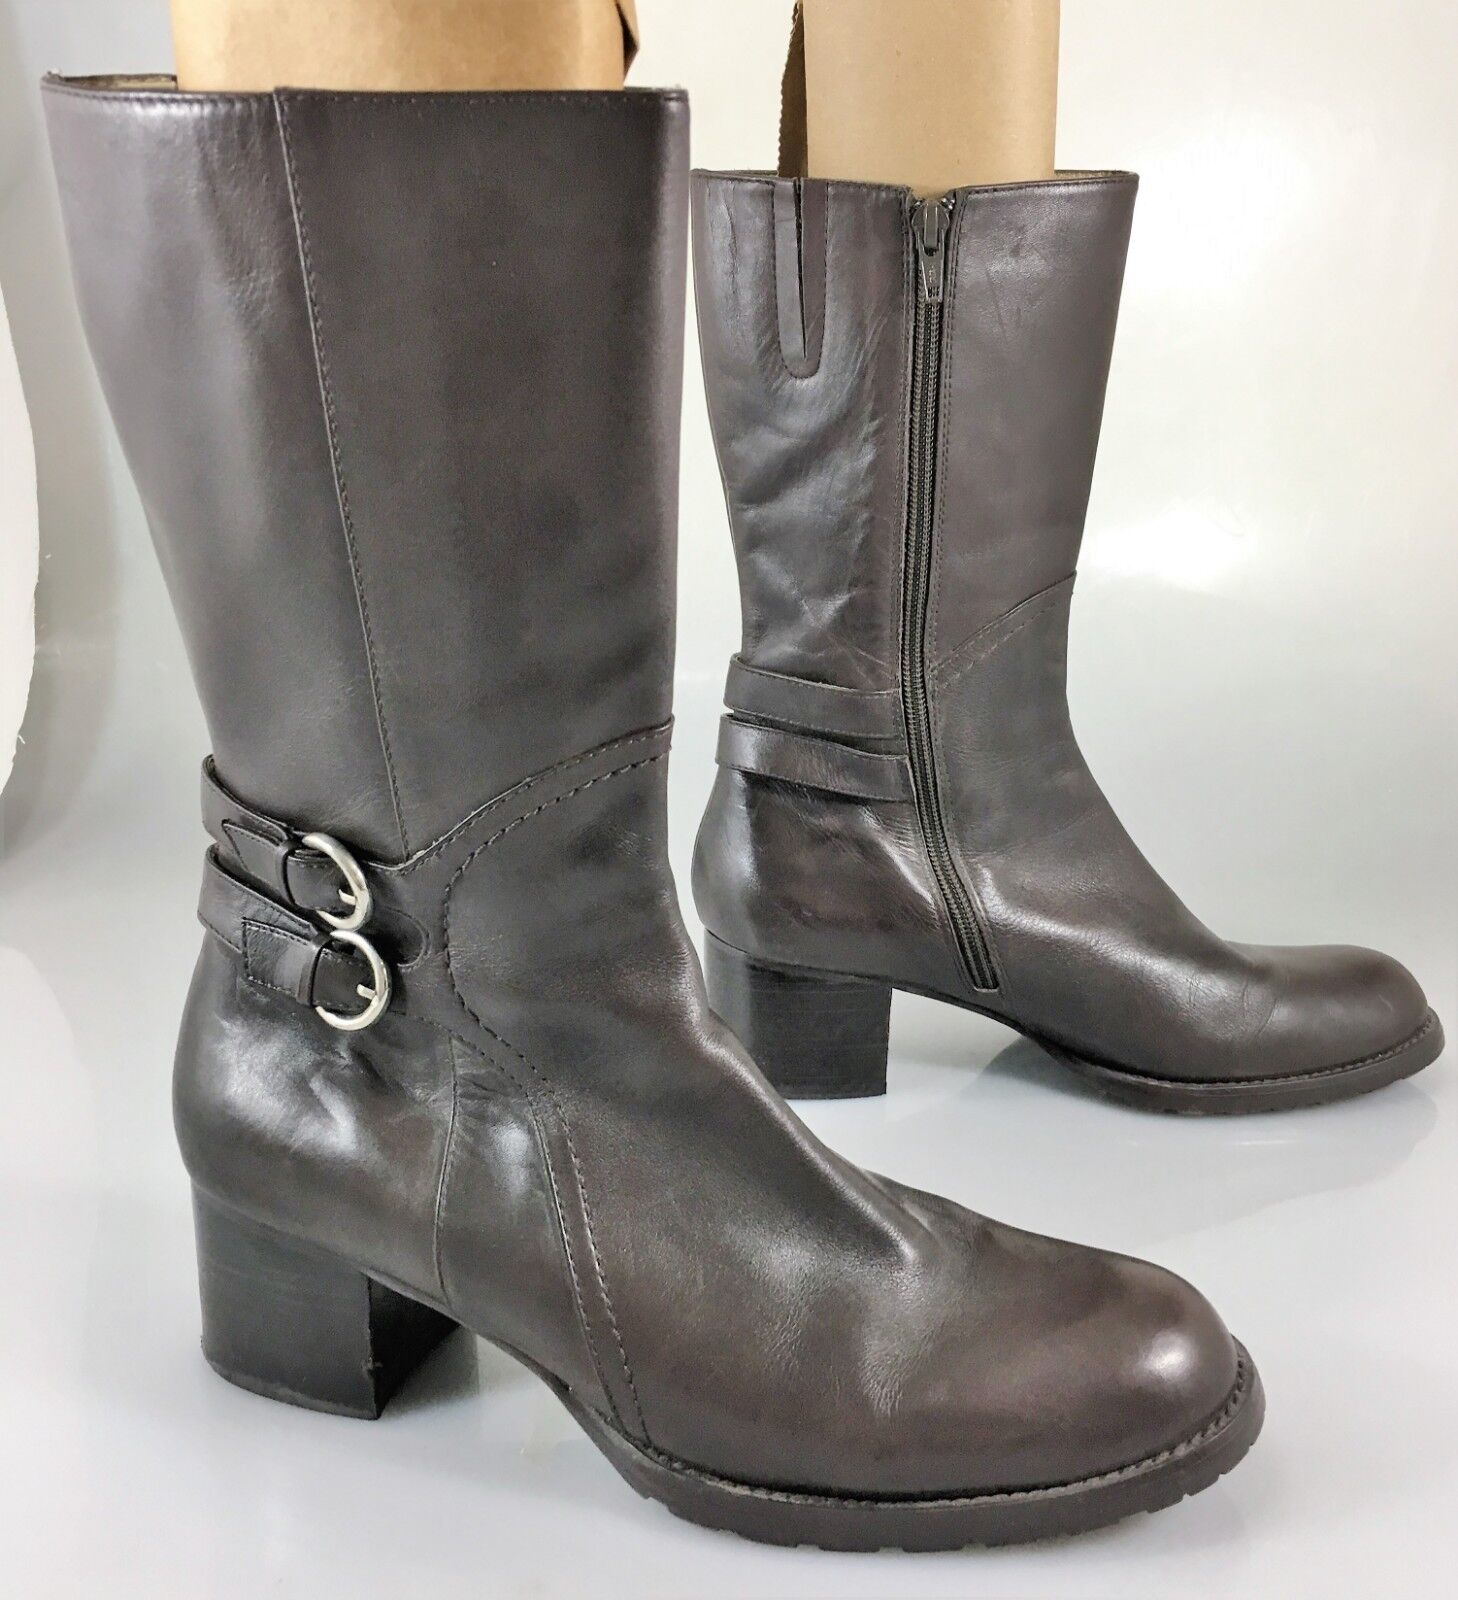 Charles by Charles David Womens 9B Brown Leather Mid-Calf 2  Heels Boots